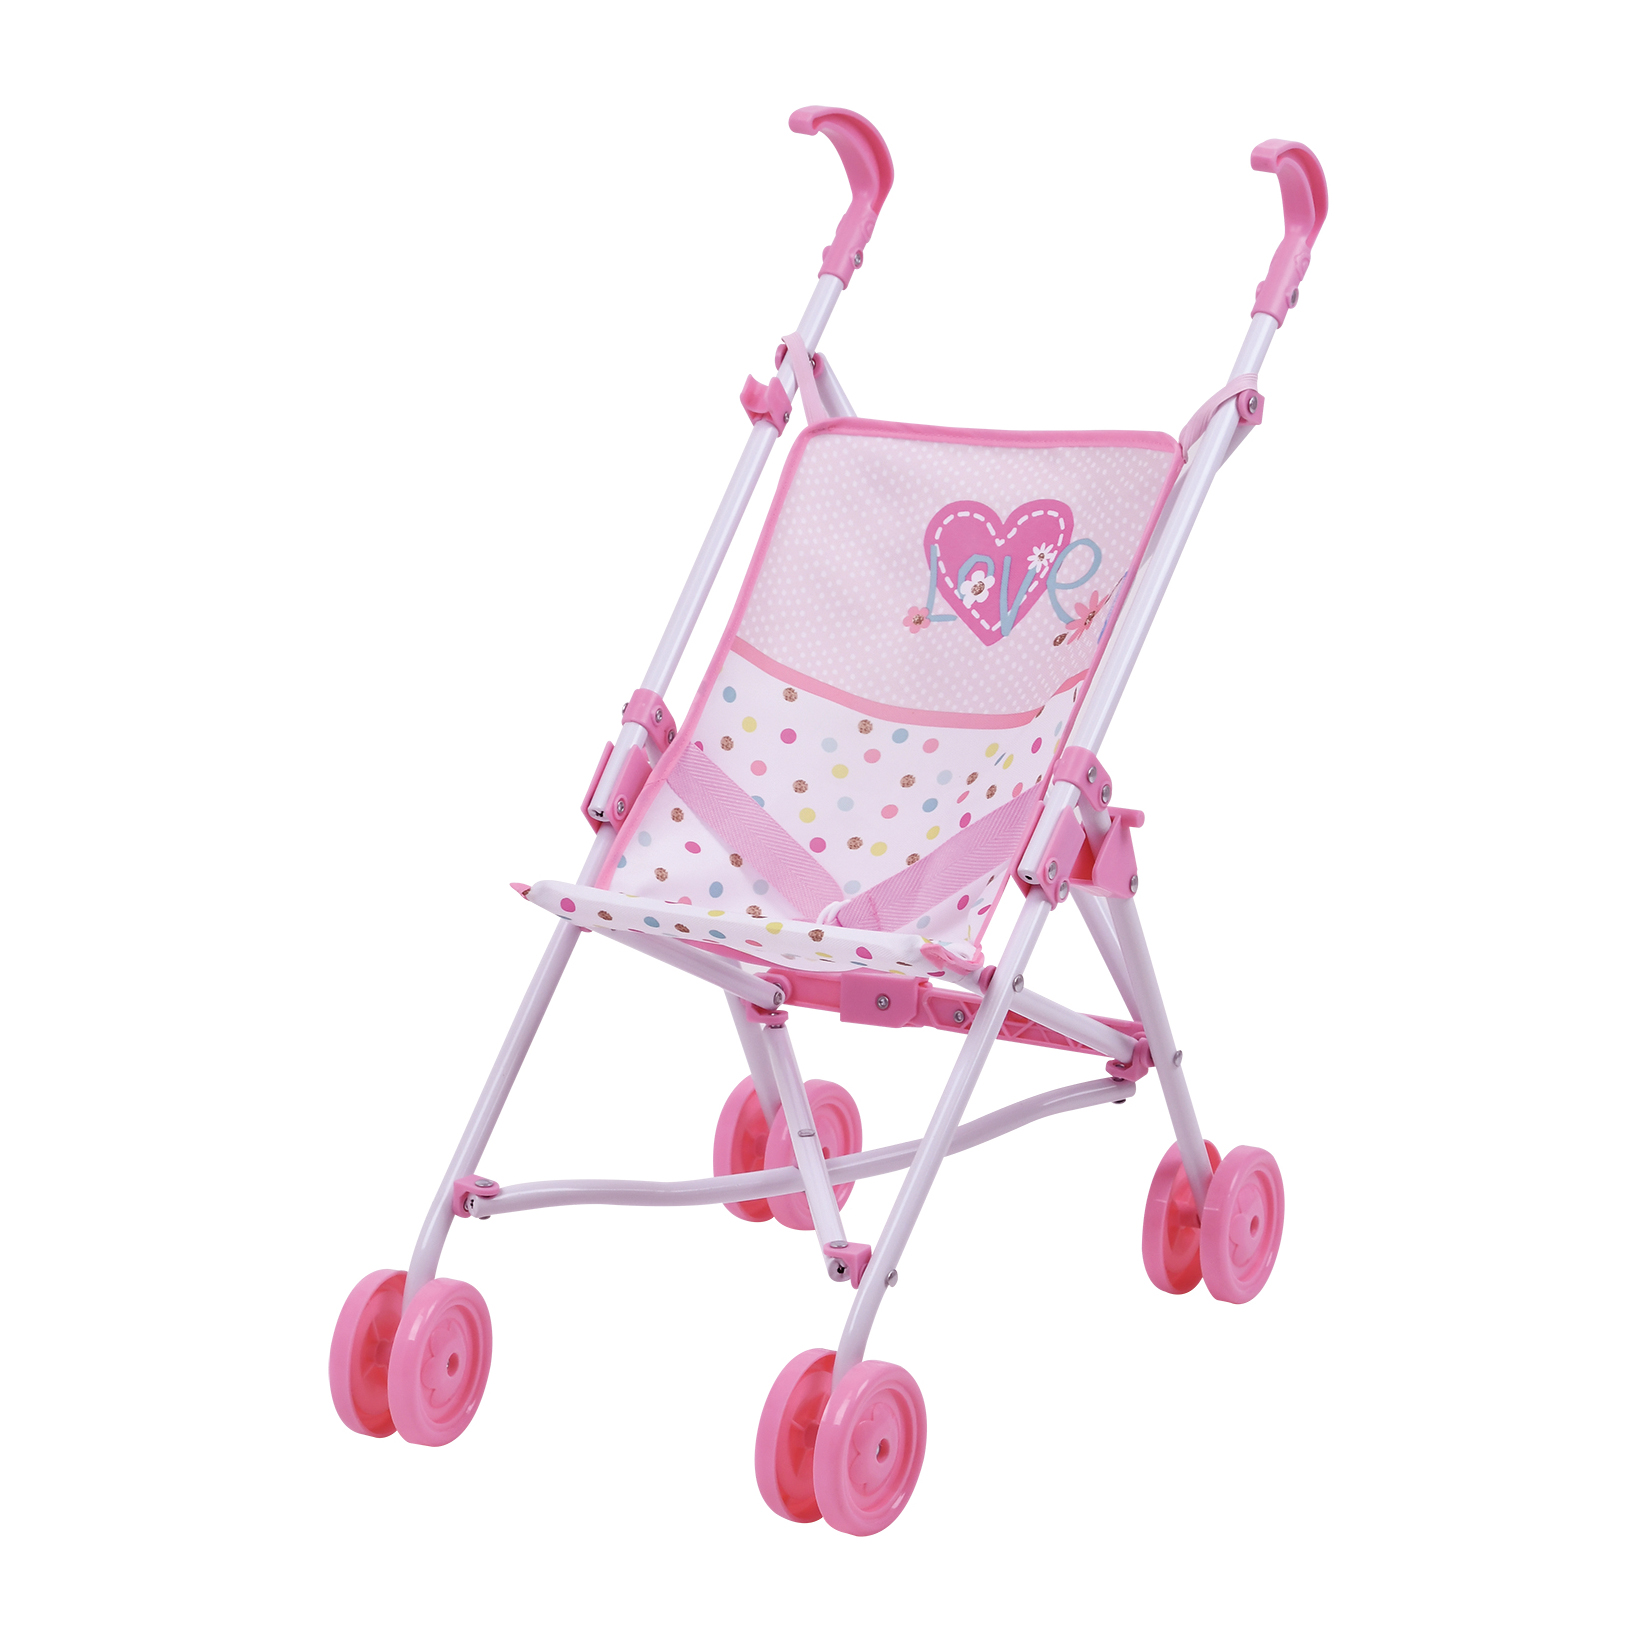 Black Handles and Hot Pink Frame 0128A Precious Toys Hot Pink Umbrella Doll Stroller